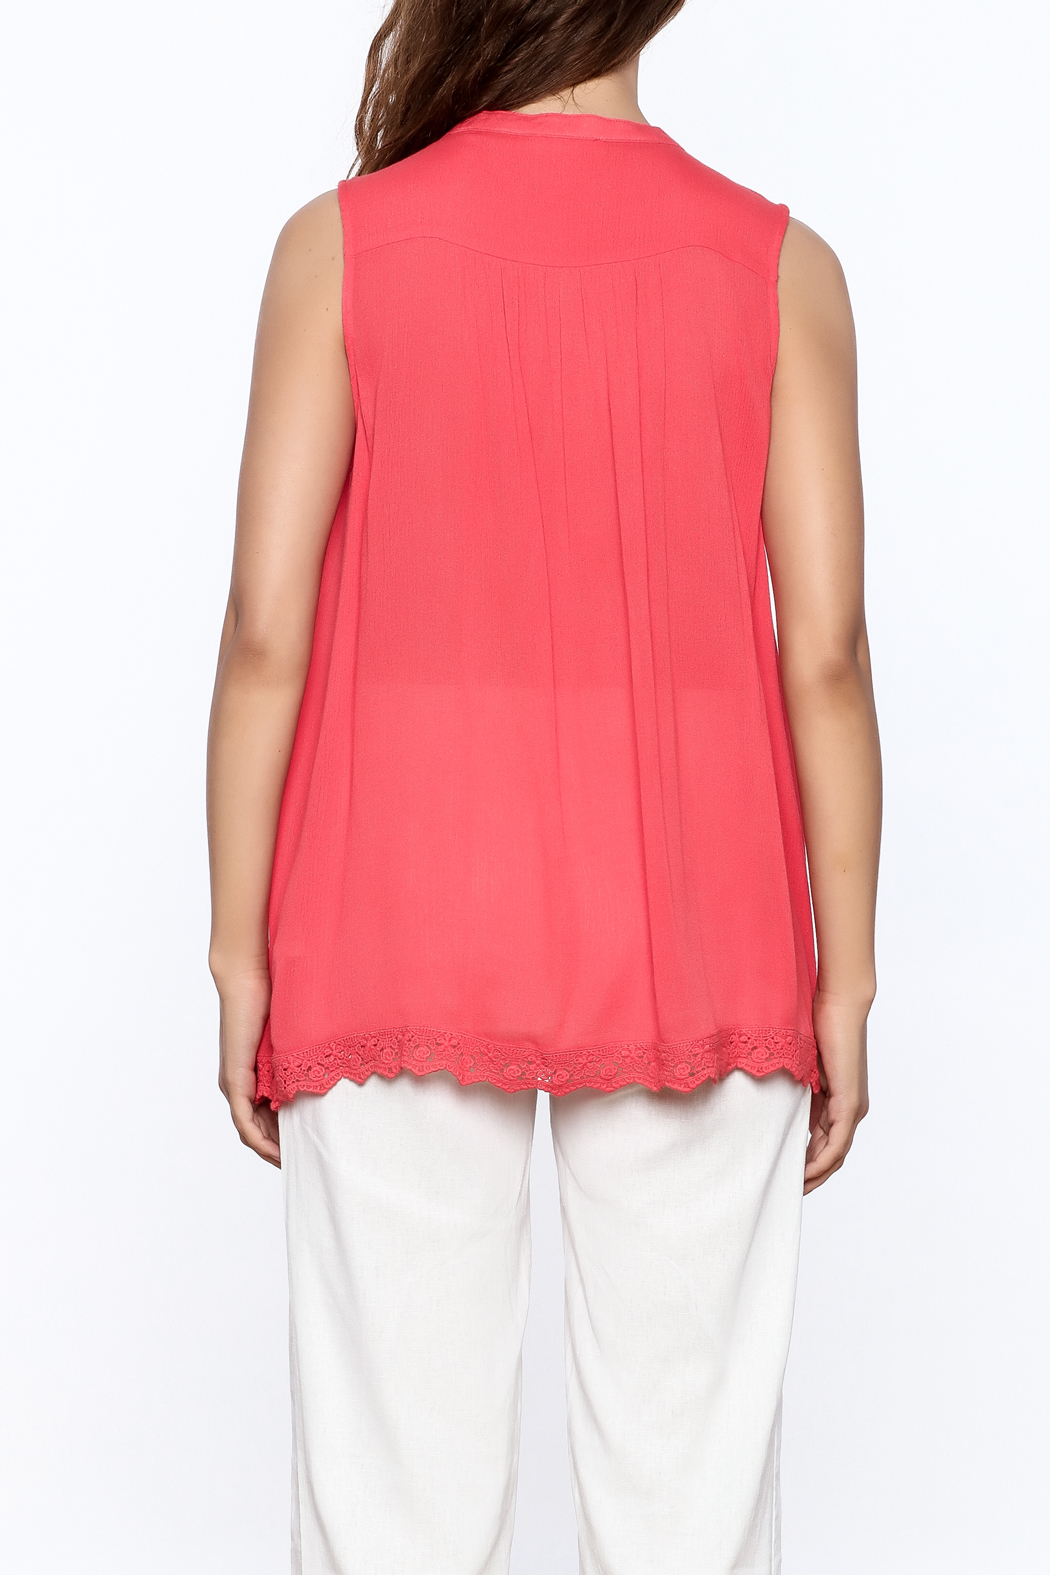 Blu Pepper Coral Sleeveless Top - Back Cropped Image